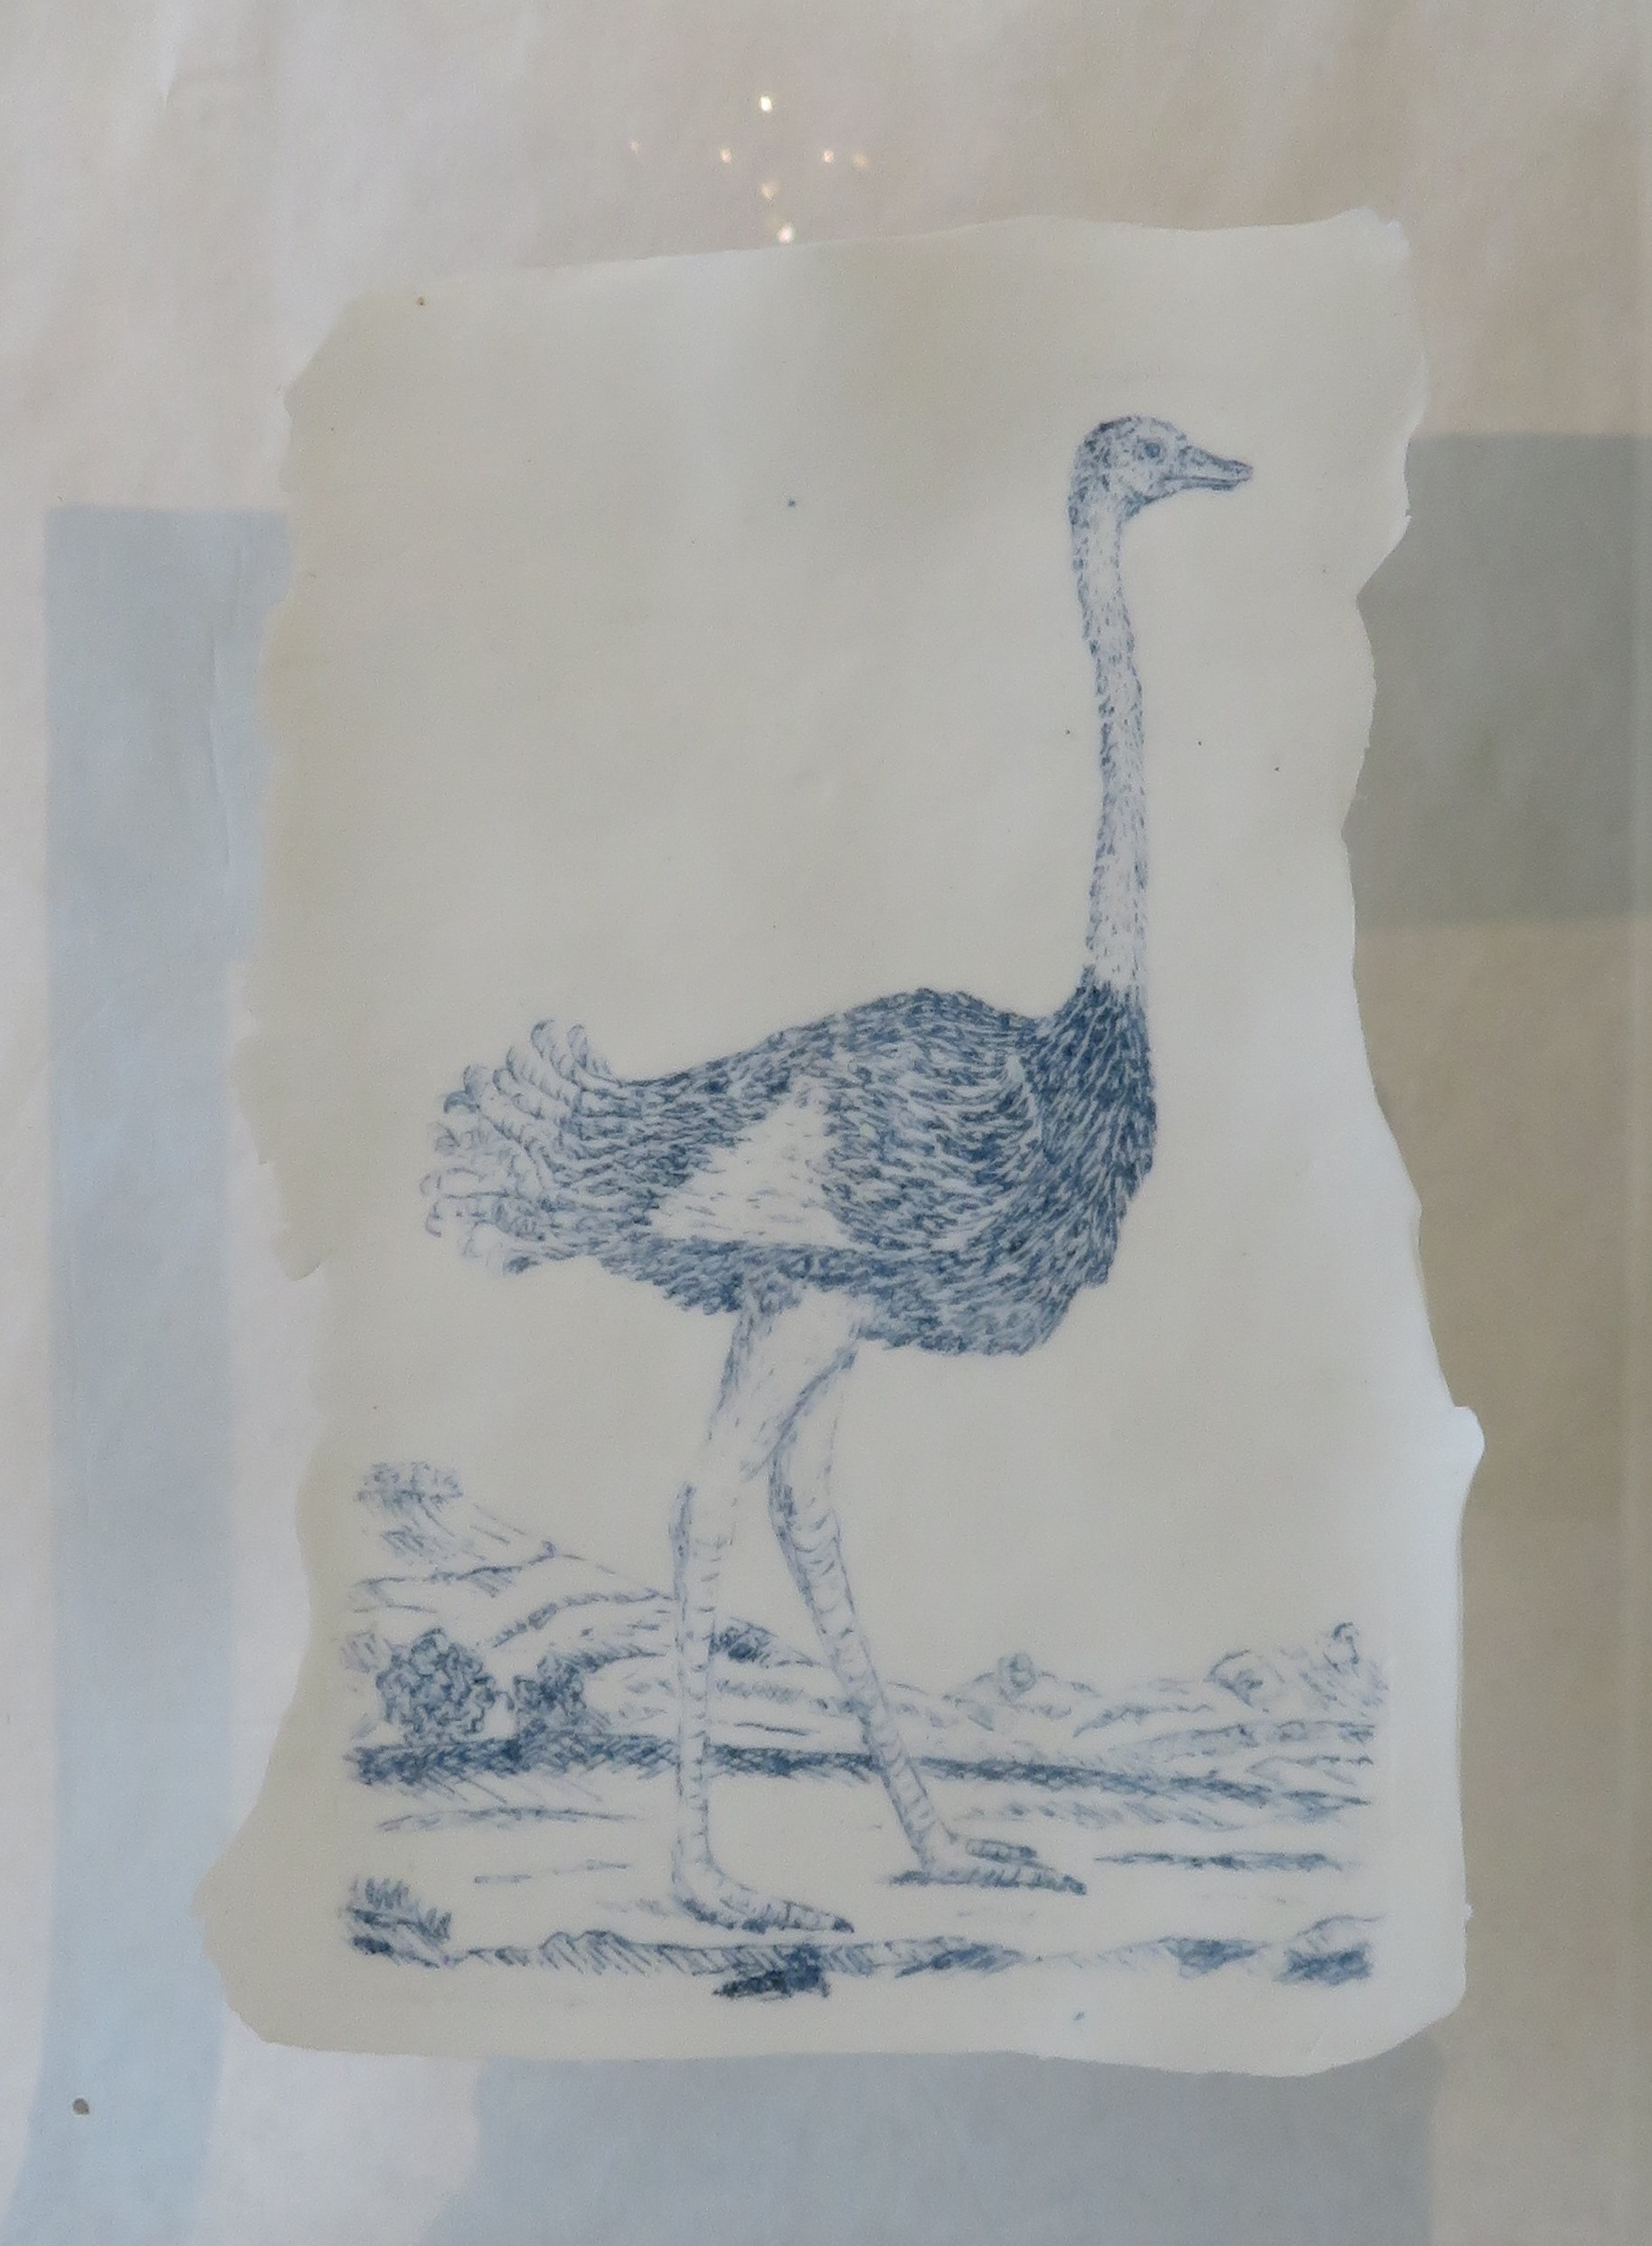 102B MICHELLE RALL, GORDON EXPEDITION SERIES CIRCA 1777, OSTRICH, PORCELAIN